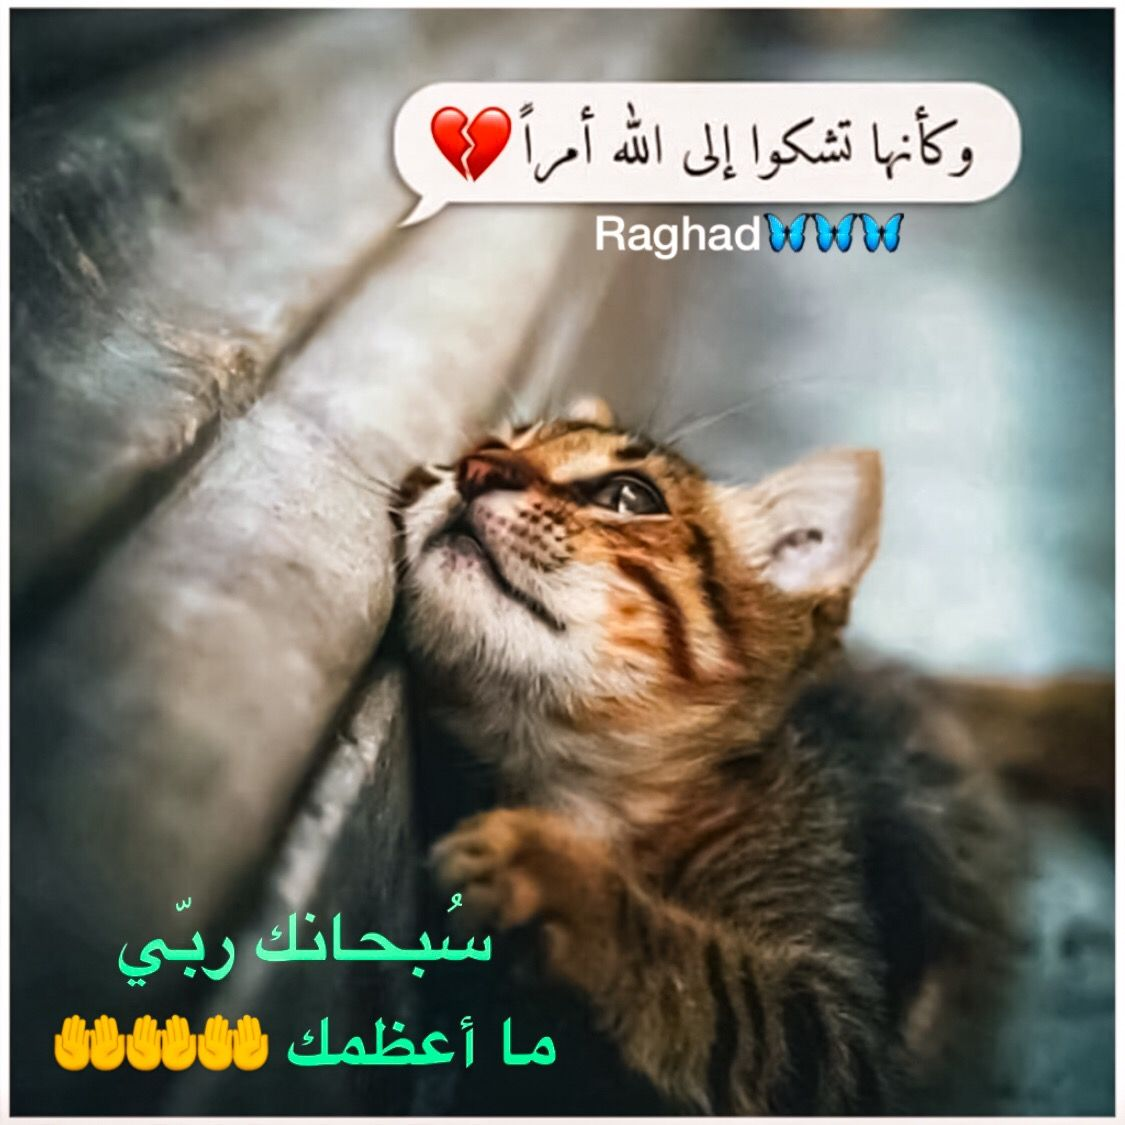 Desertrose سبحانك ربي ما أعظمك Cats Crazy Cats Cats And Kittens